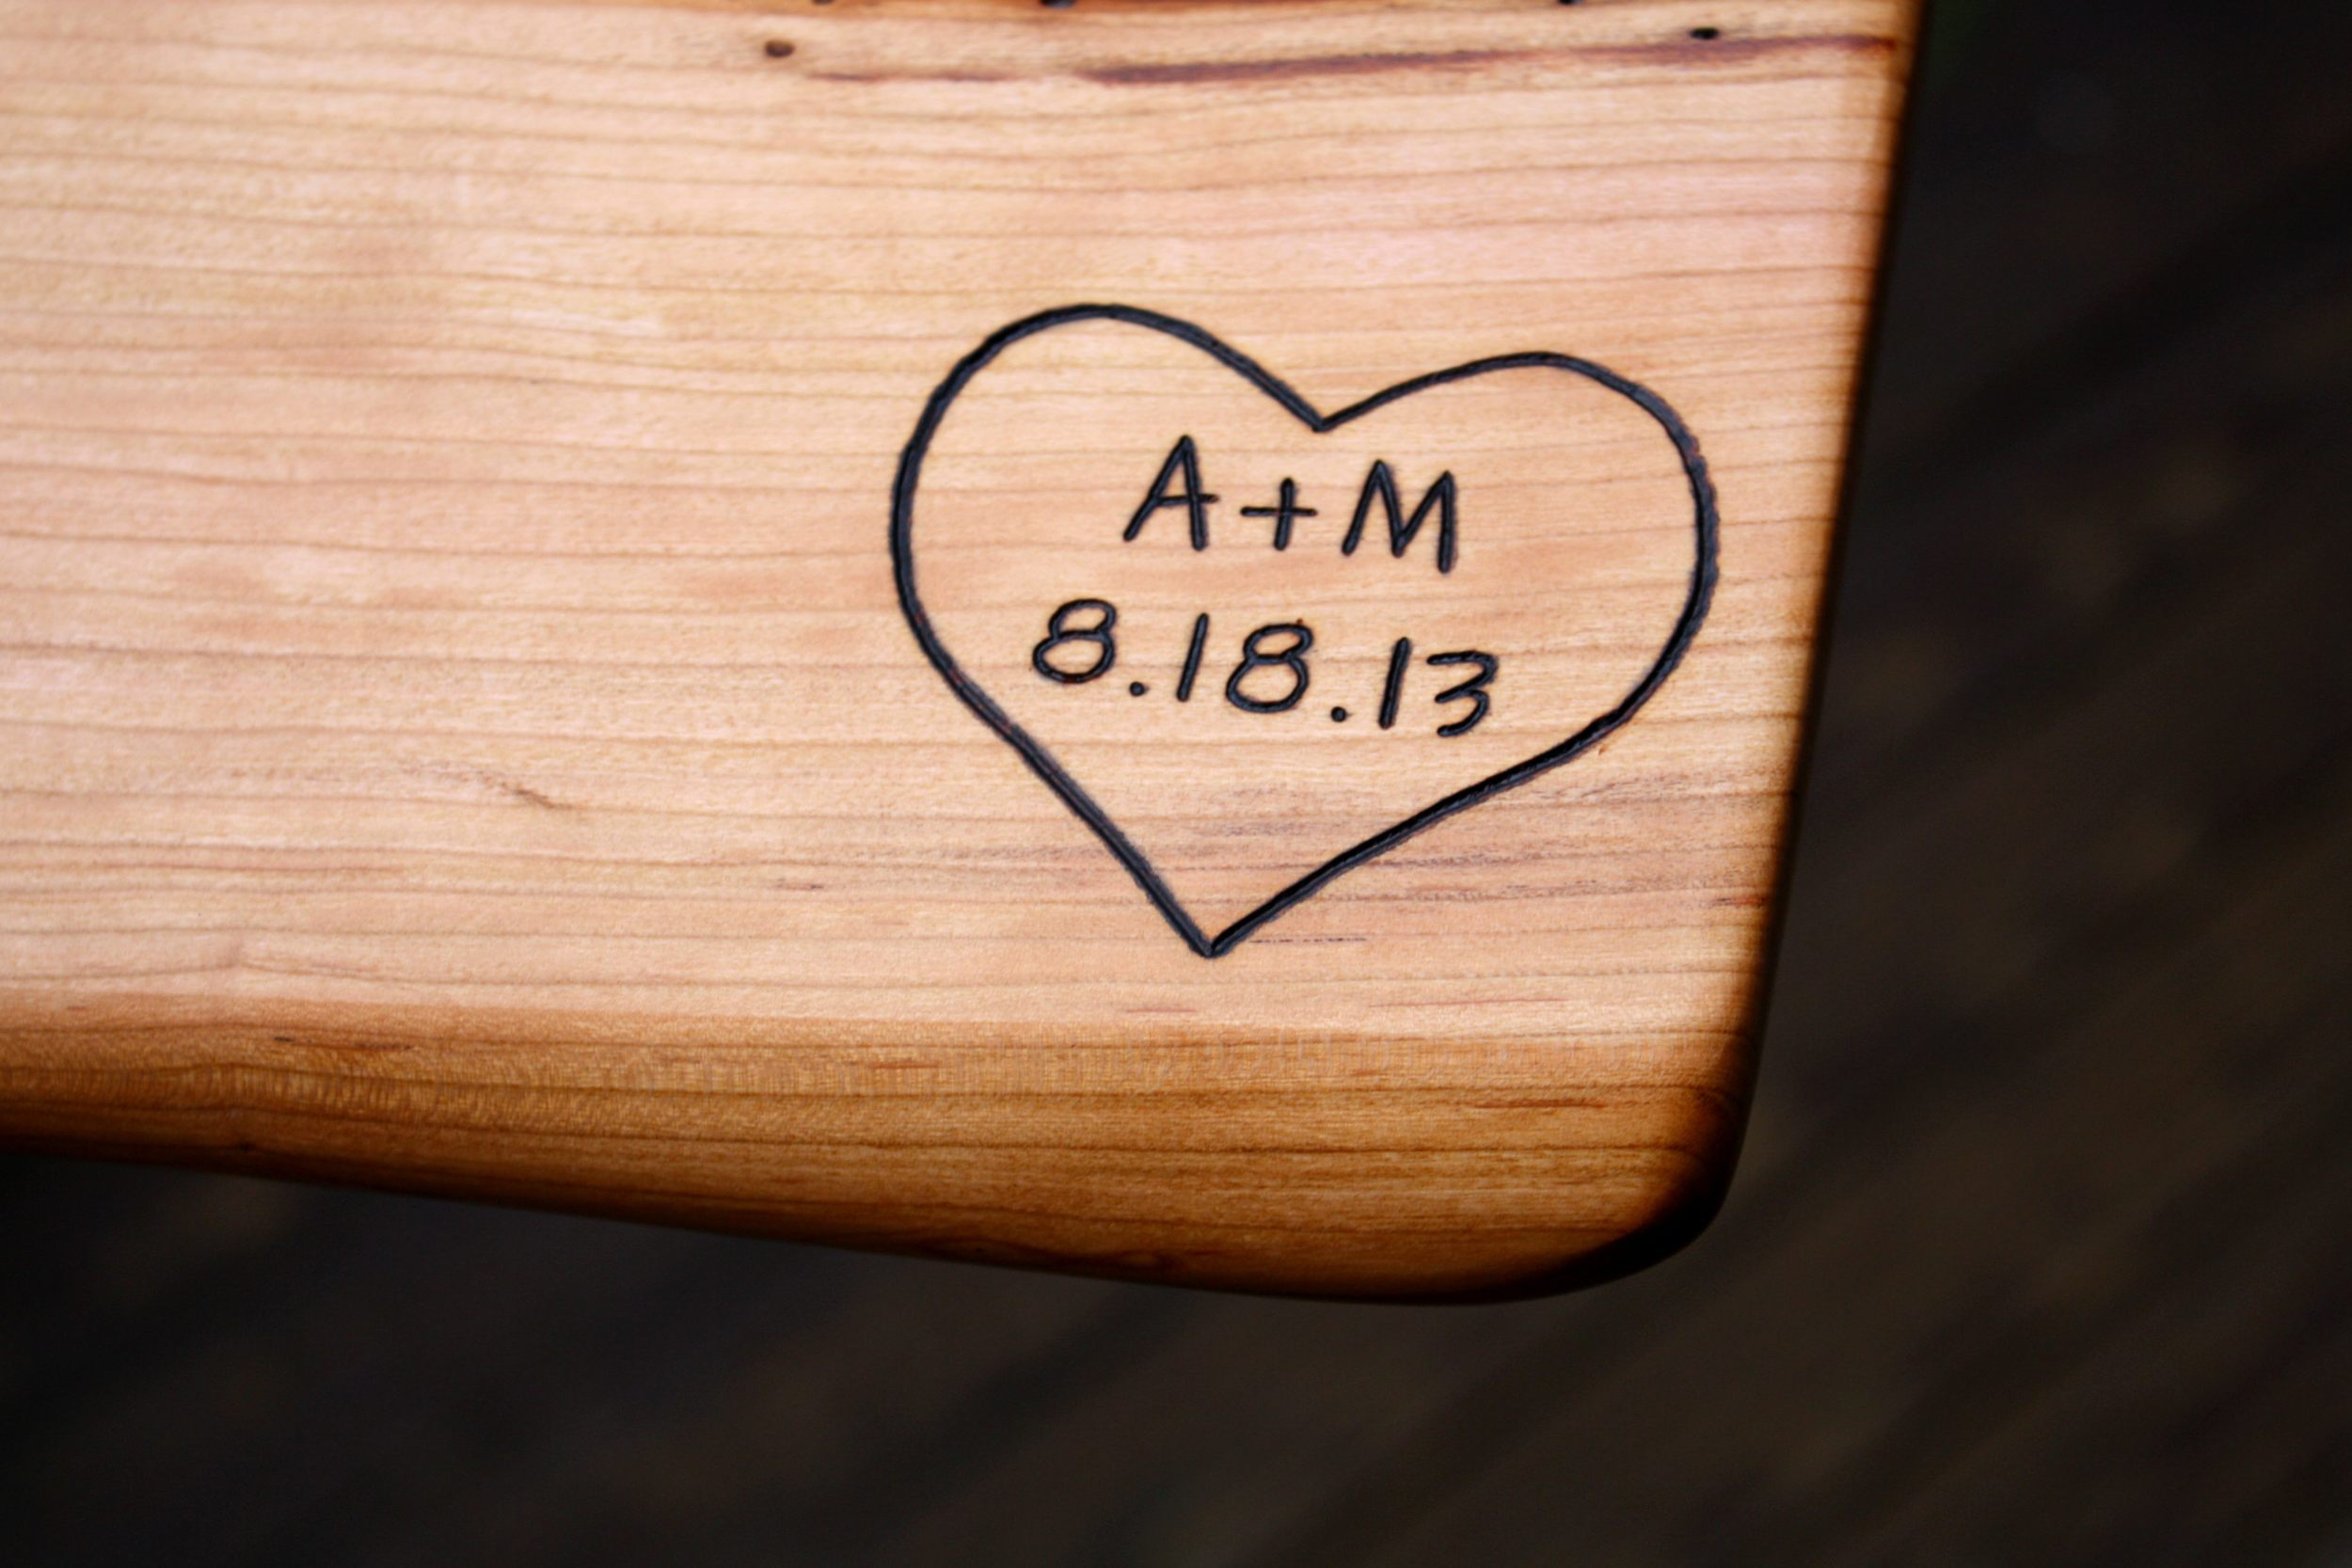 Heart engraving design